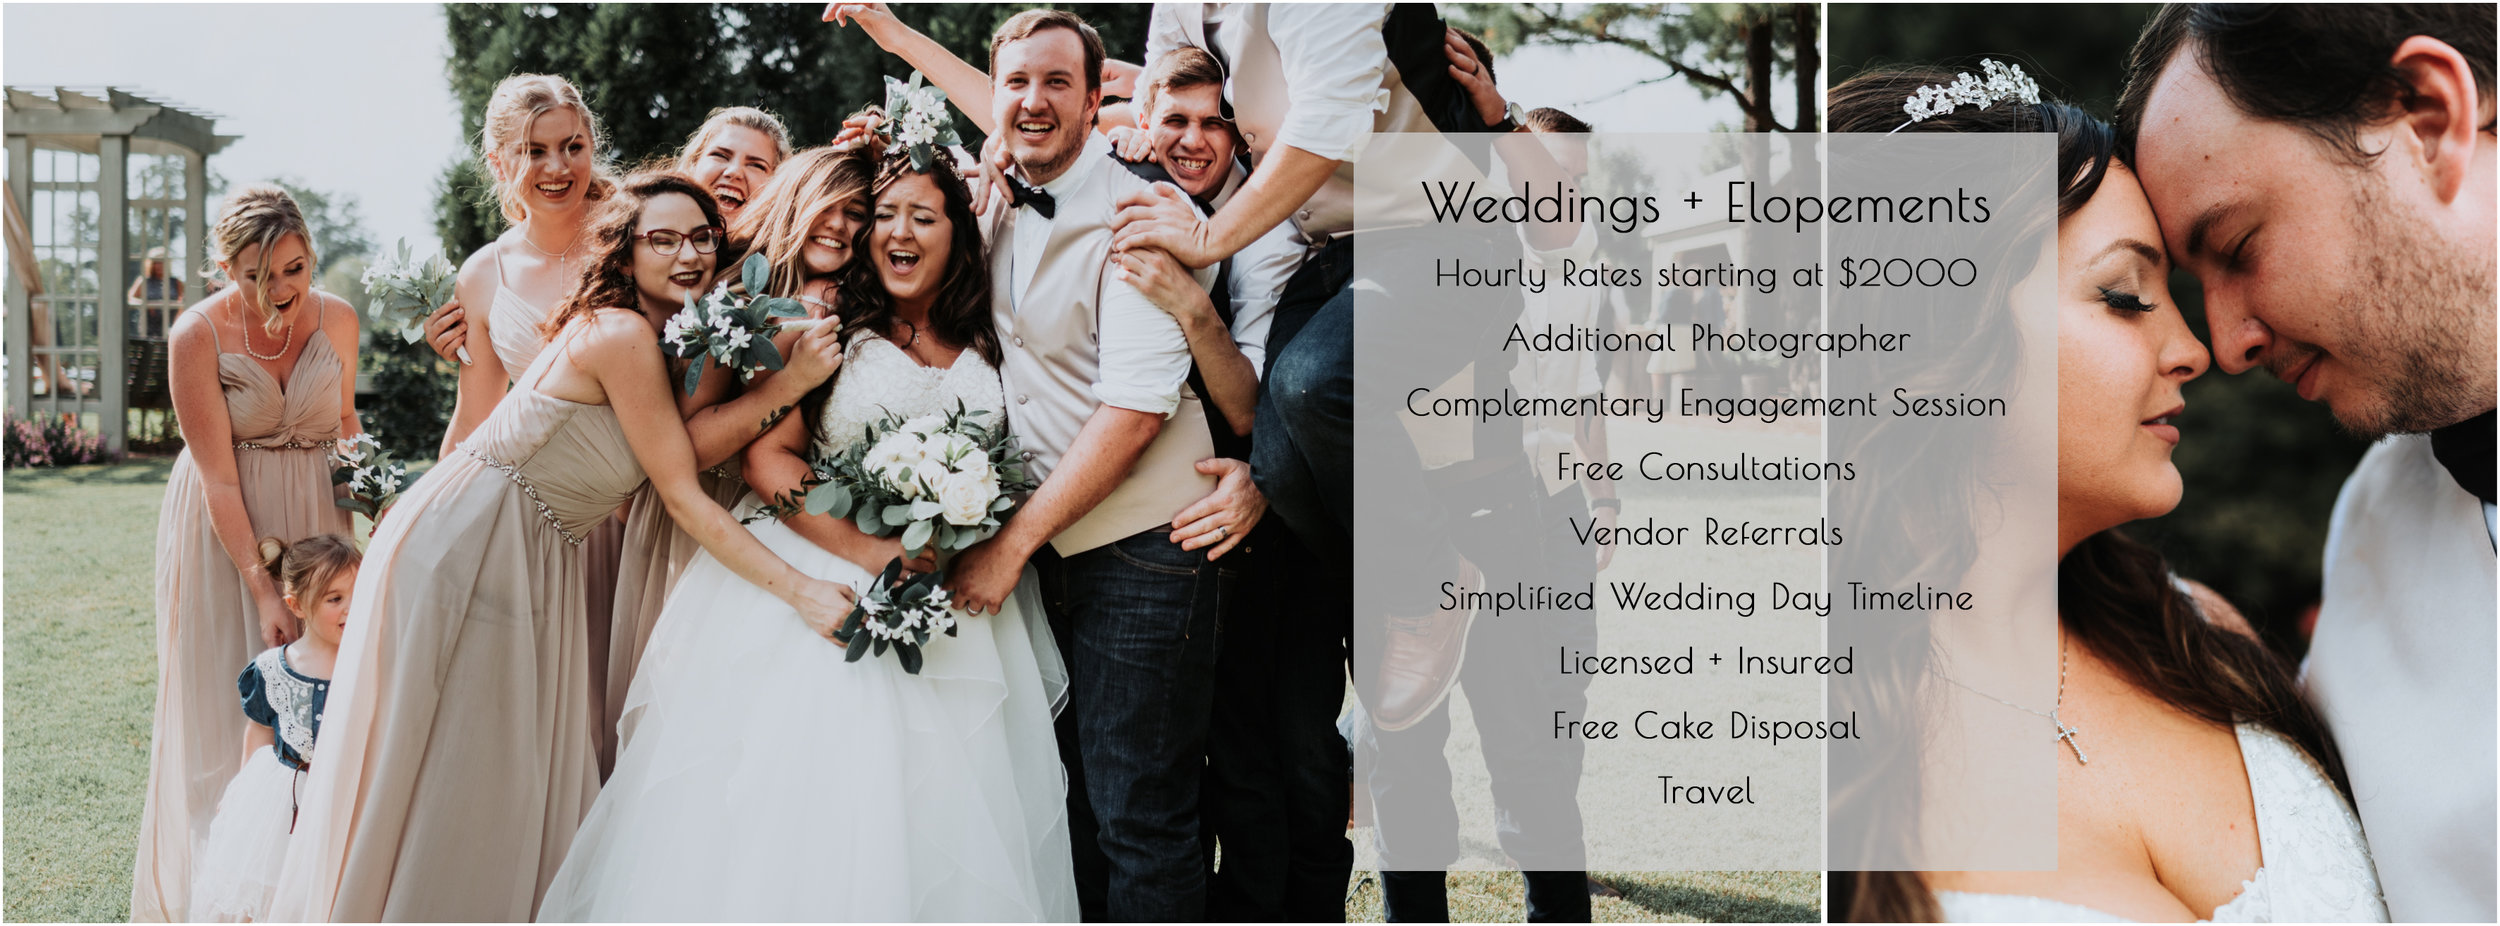 CLICK HERE FOR MORE INFORMATION ON WEDDING PACKAGES